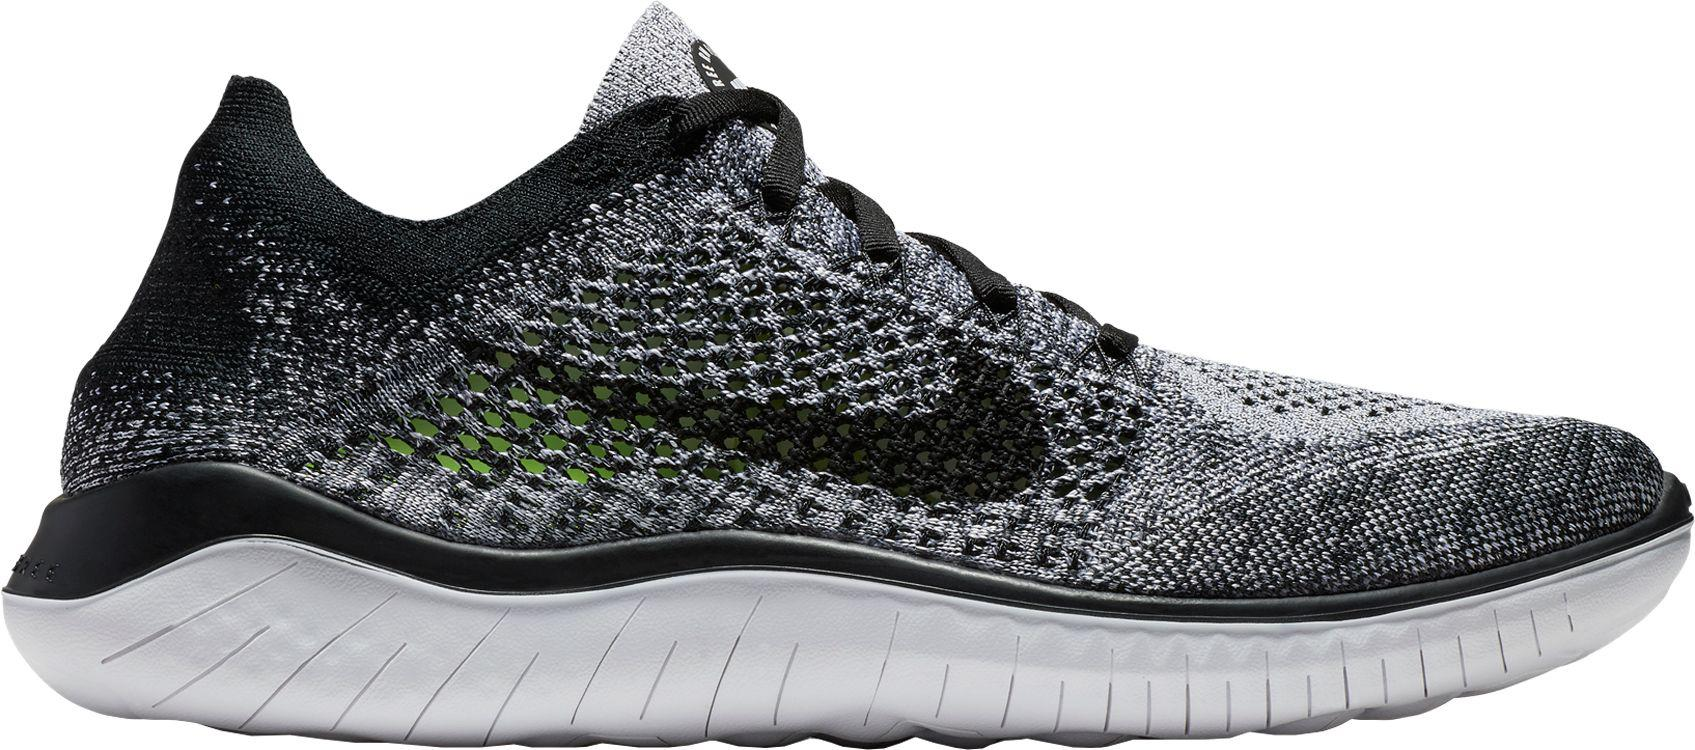 a92b3f0bb89 Lyst - Nike Free Rn Flyknit 2018 Running Shoes in Black for Men